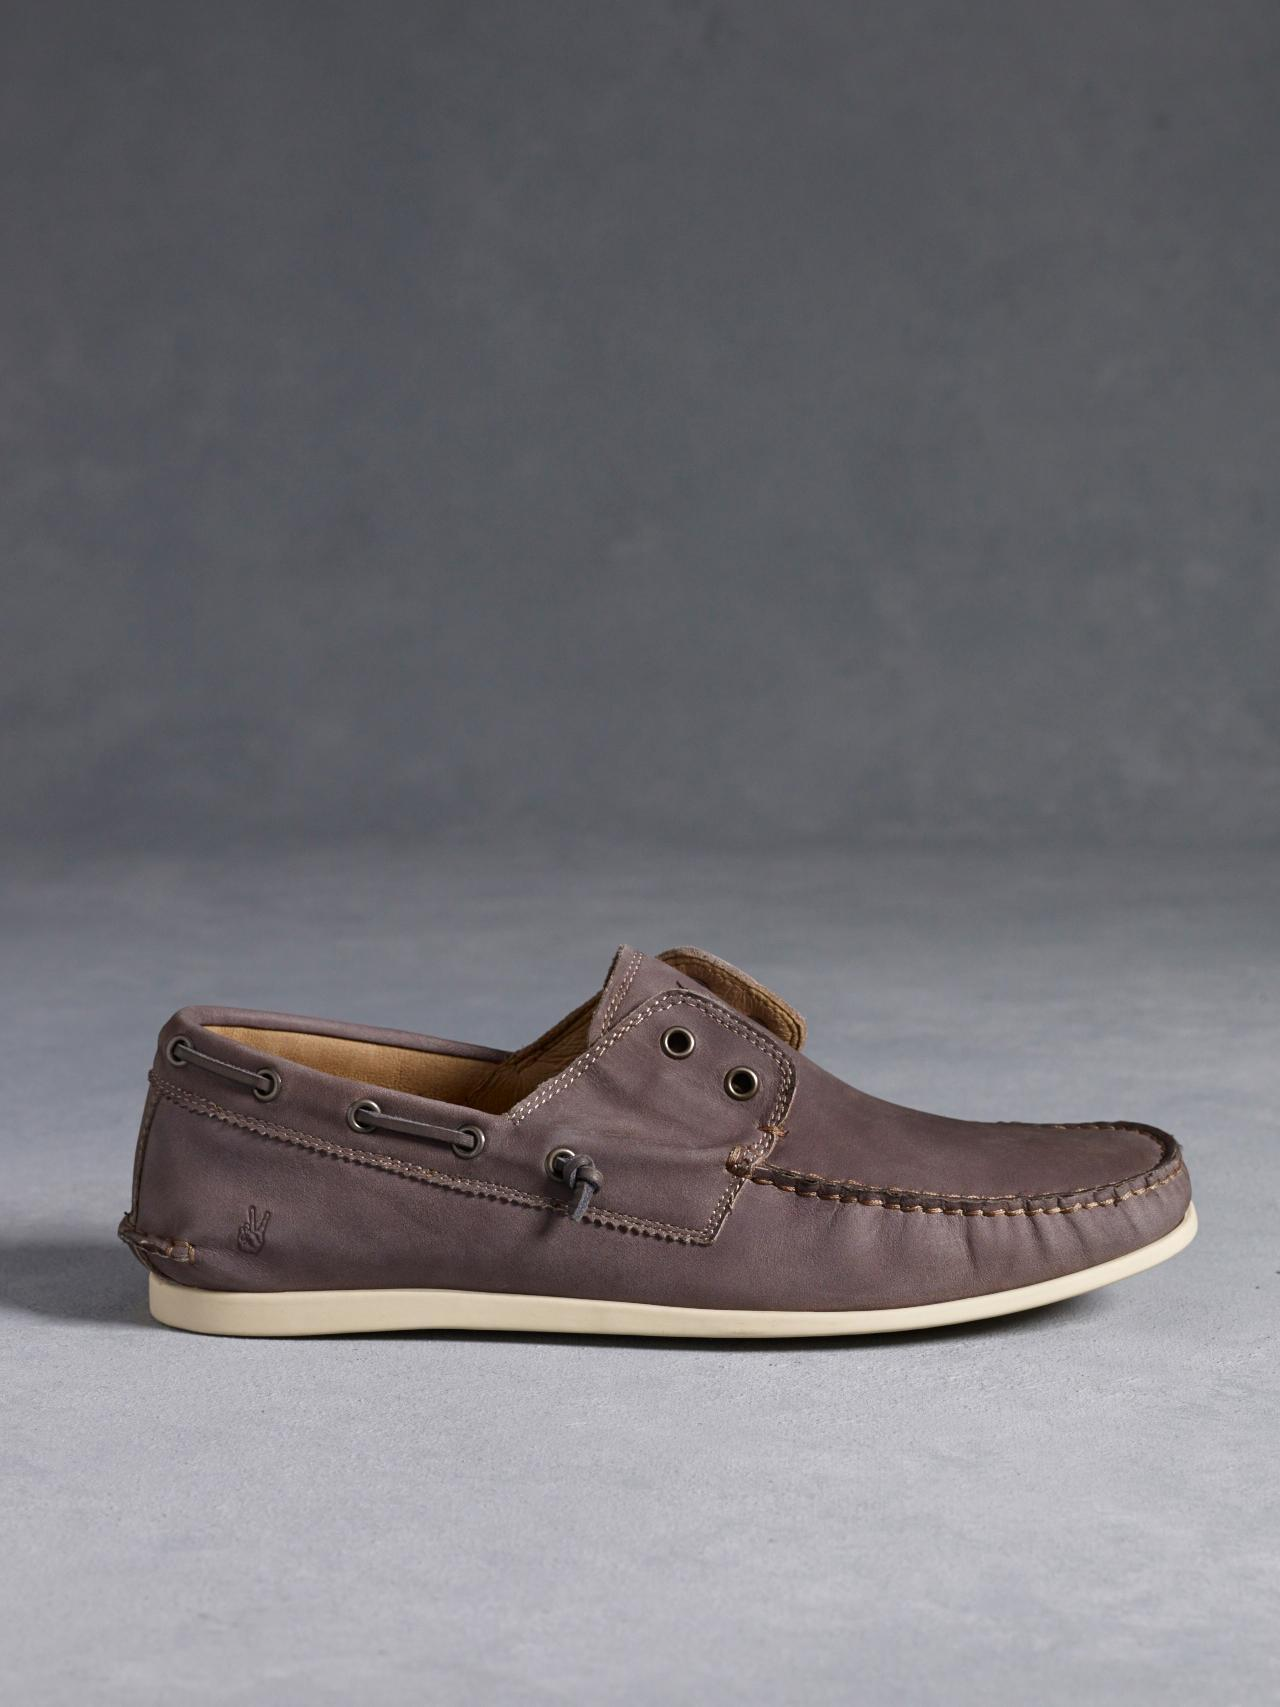 John Varvatos Schooner Boat Shoe Leather